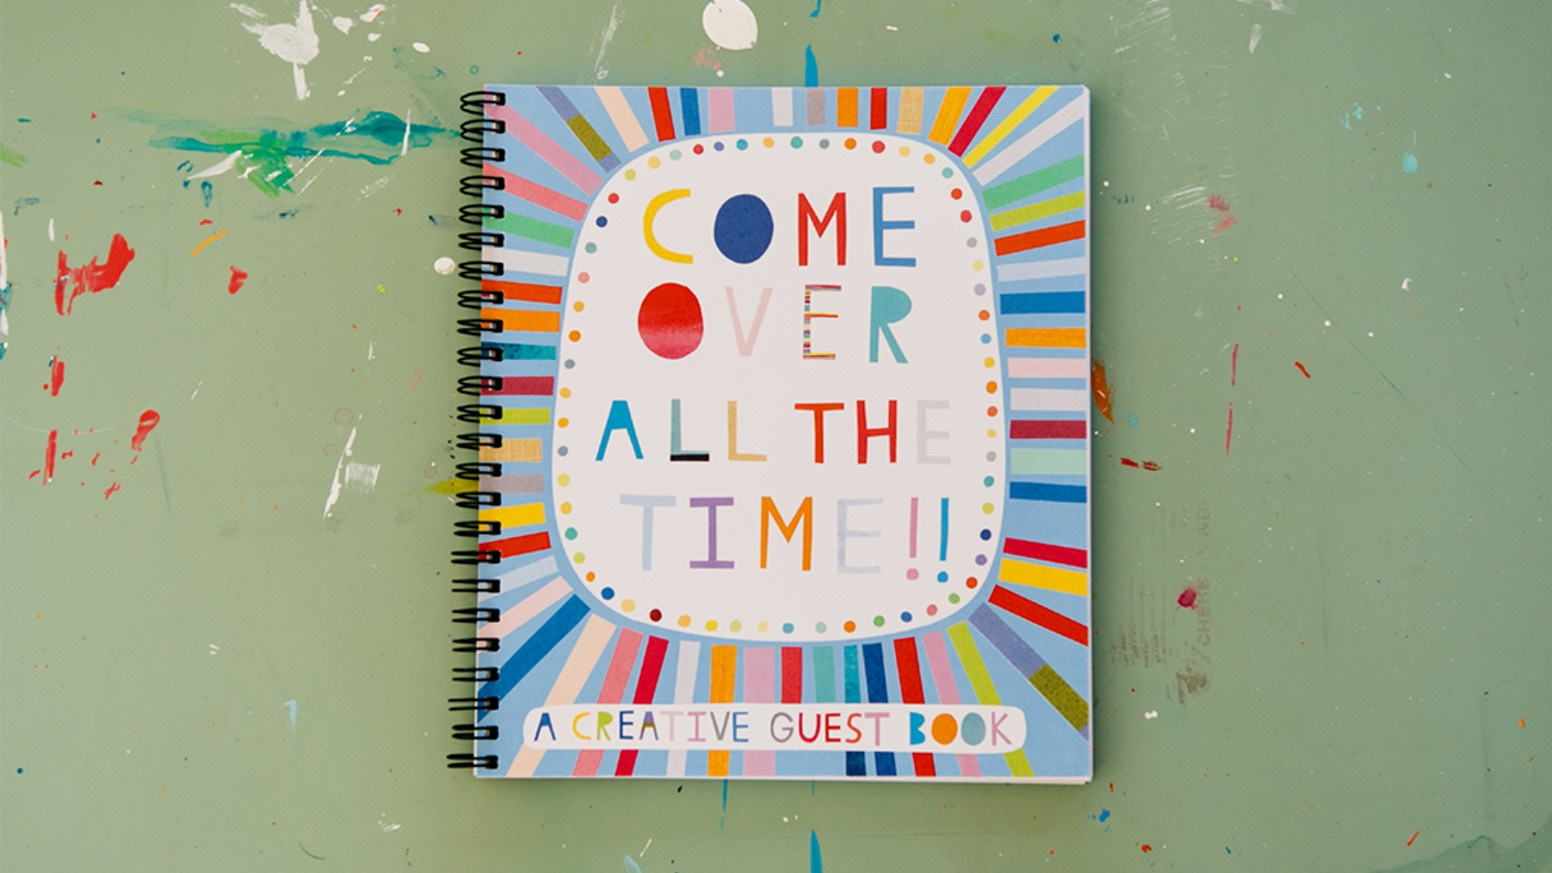 10 Clever Creative Shared Bedrooms Part 2: Come Over All The Time: A Creative Guest Book By Free